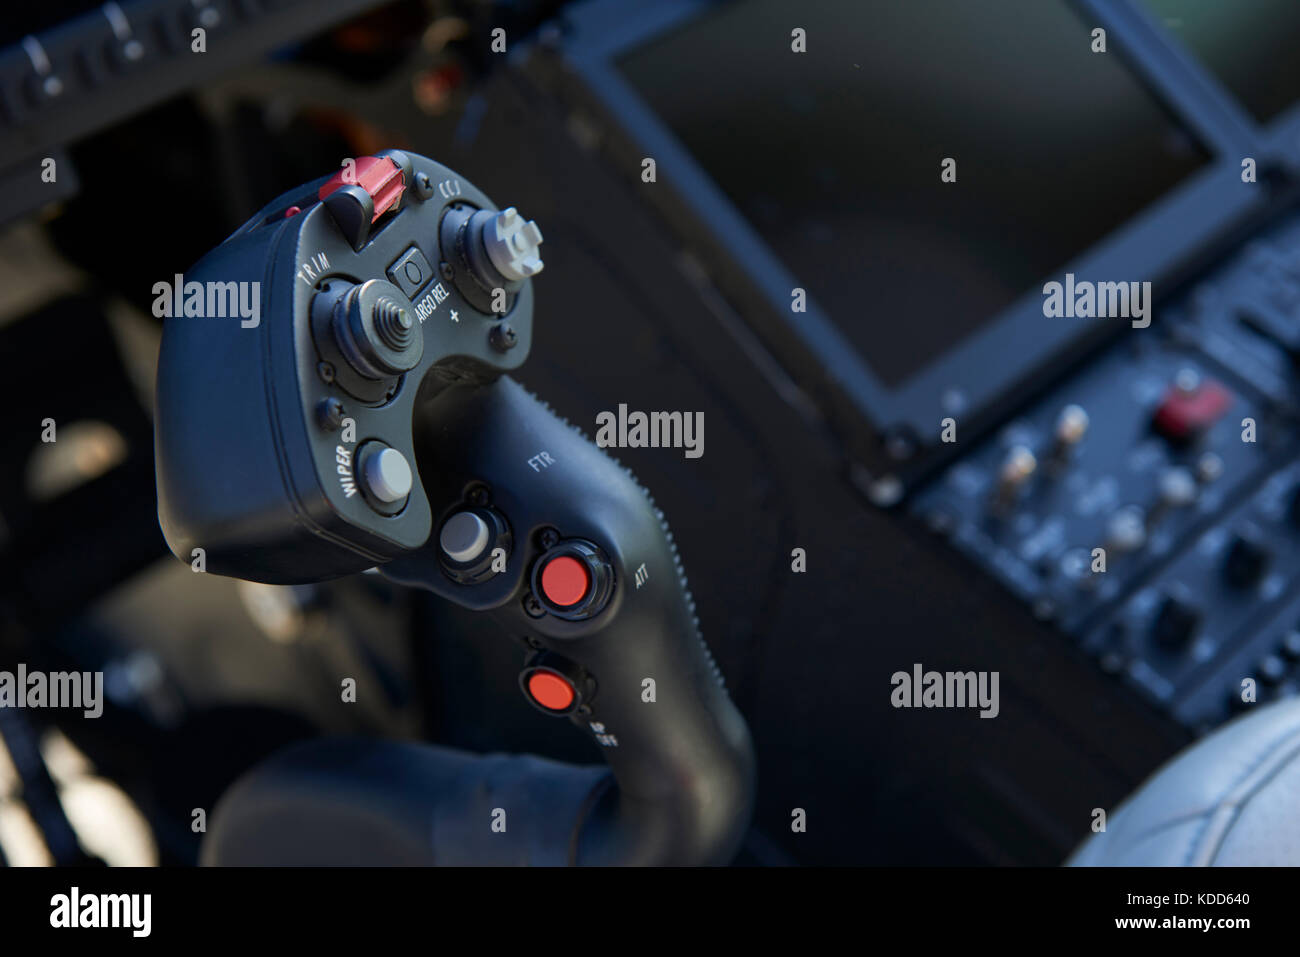 Close Up Of Joystick In Helicopter Cockpit - Stock Image